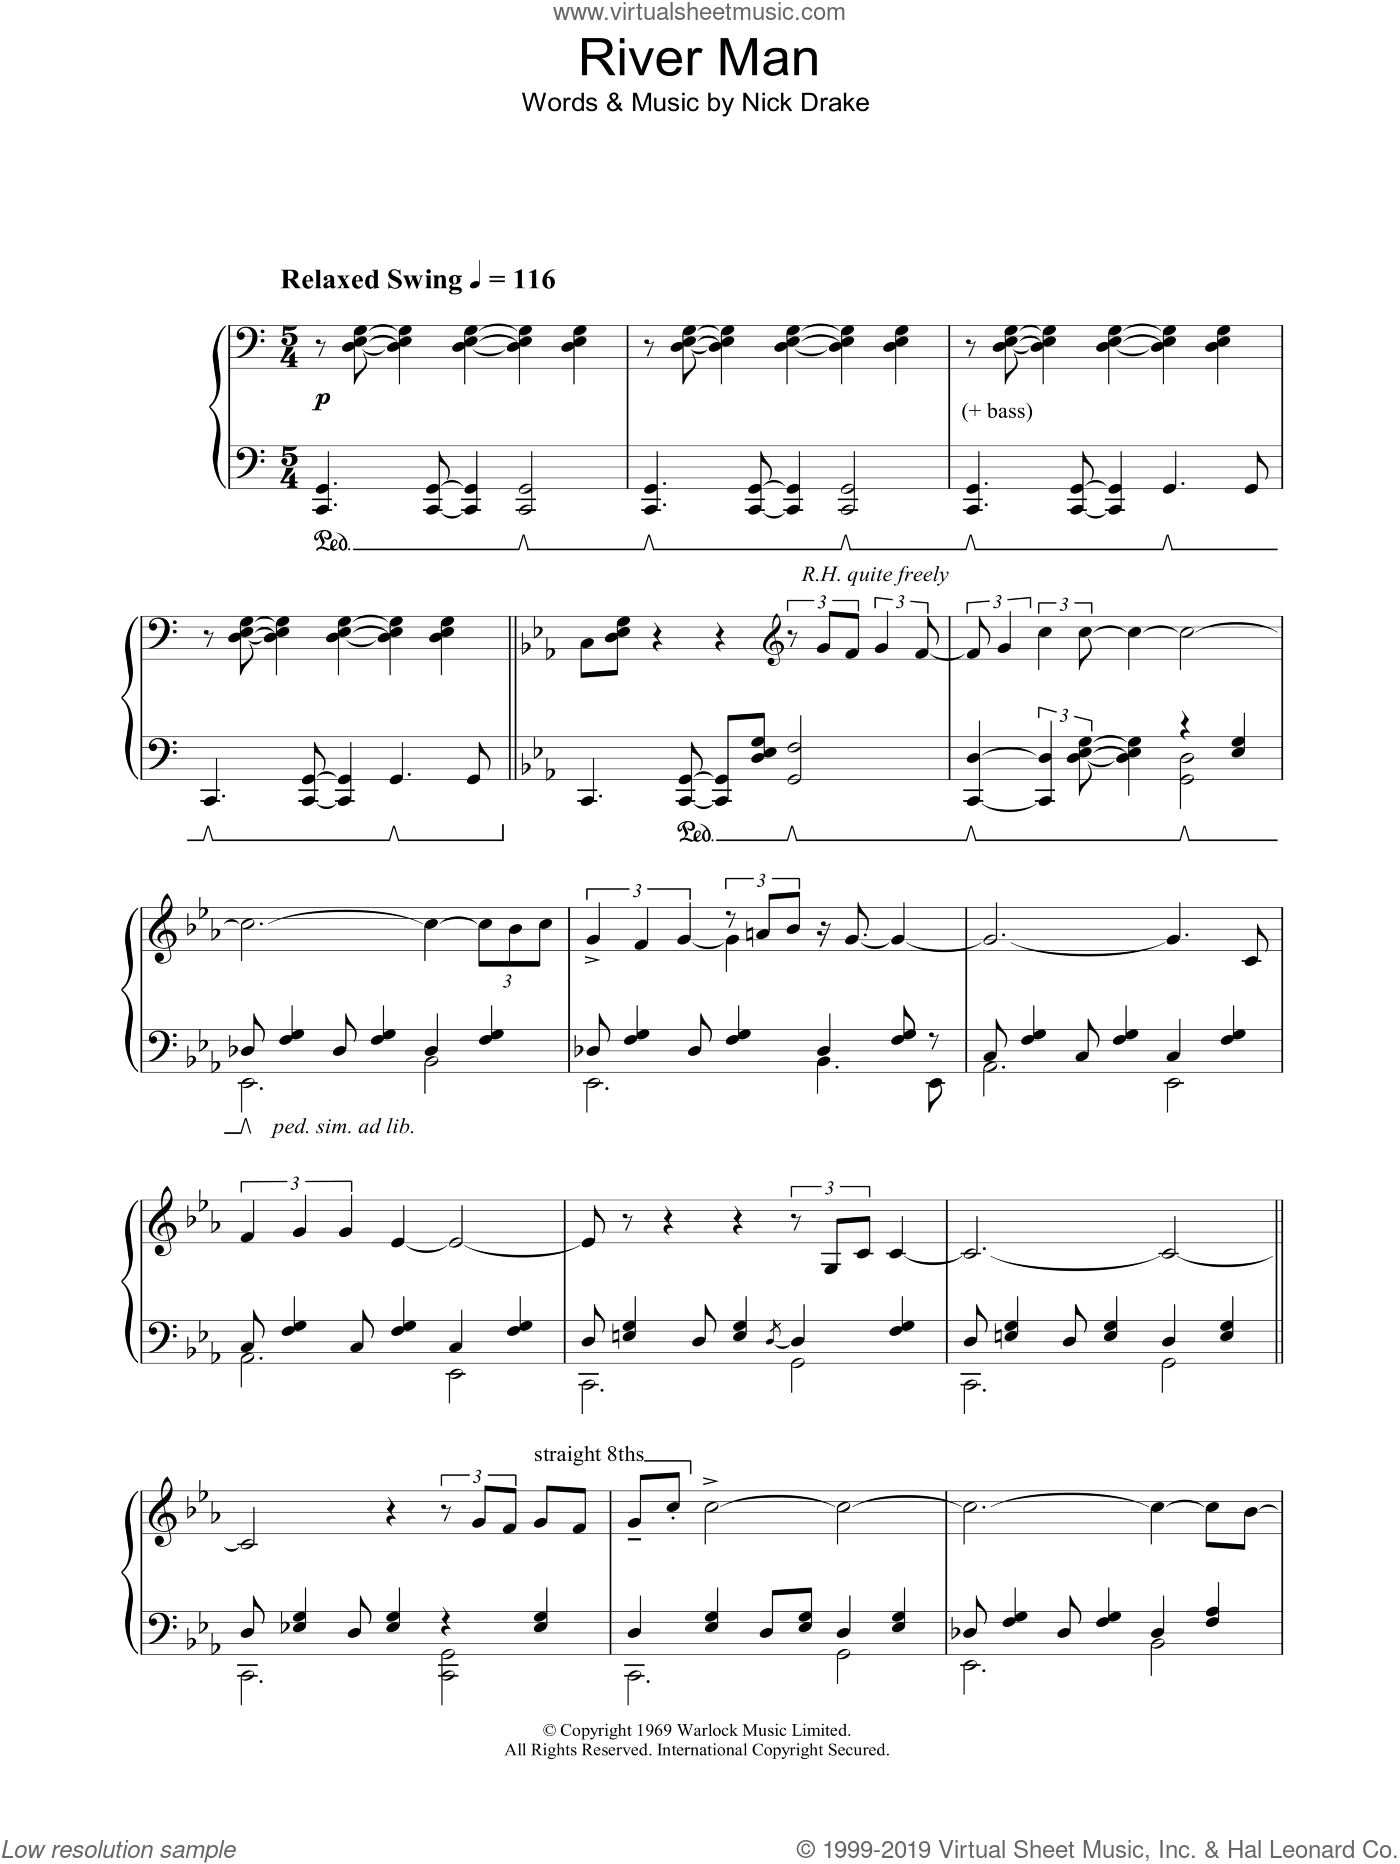 River Man sheet music for piano solo by Nick Drake. Score Image Preview.